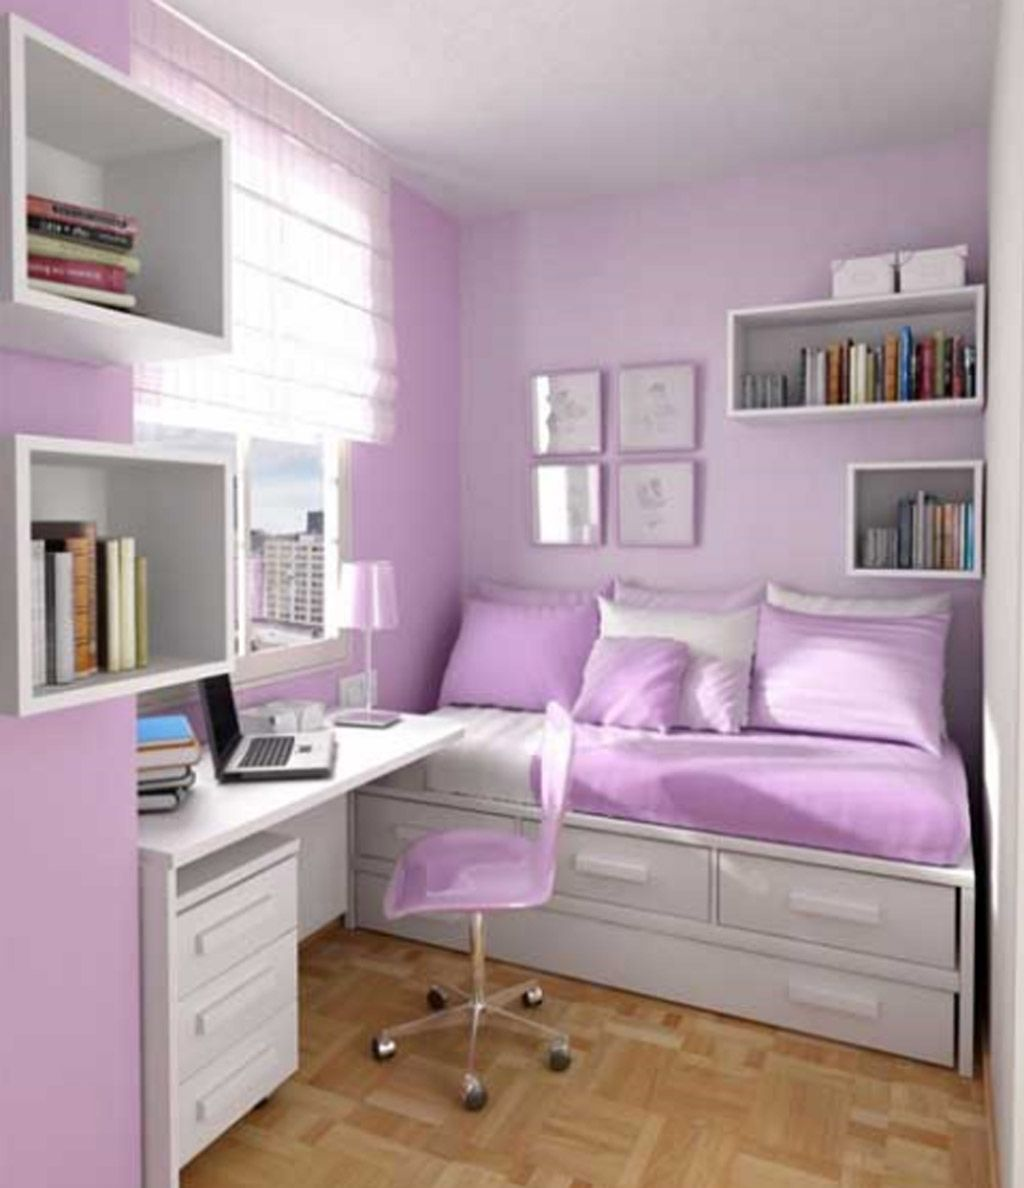 Gentil Cute Bedroom Ideas For Teenage Girls   Best Interior Design Blogs | Fashion  | Pinterest | Girls Bedroom